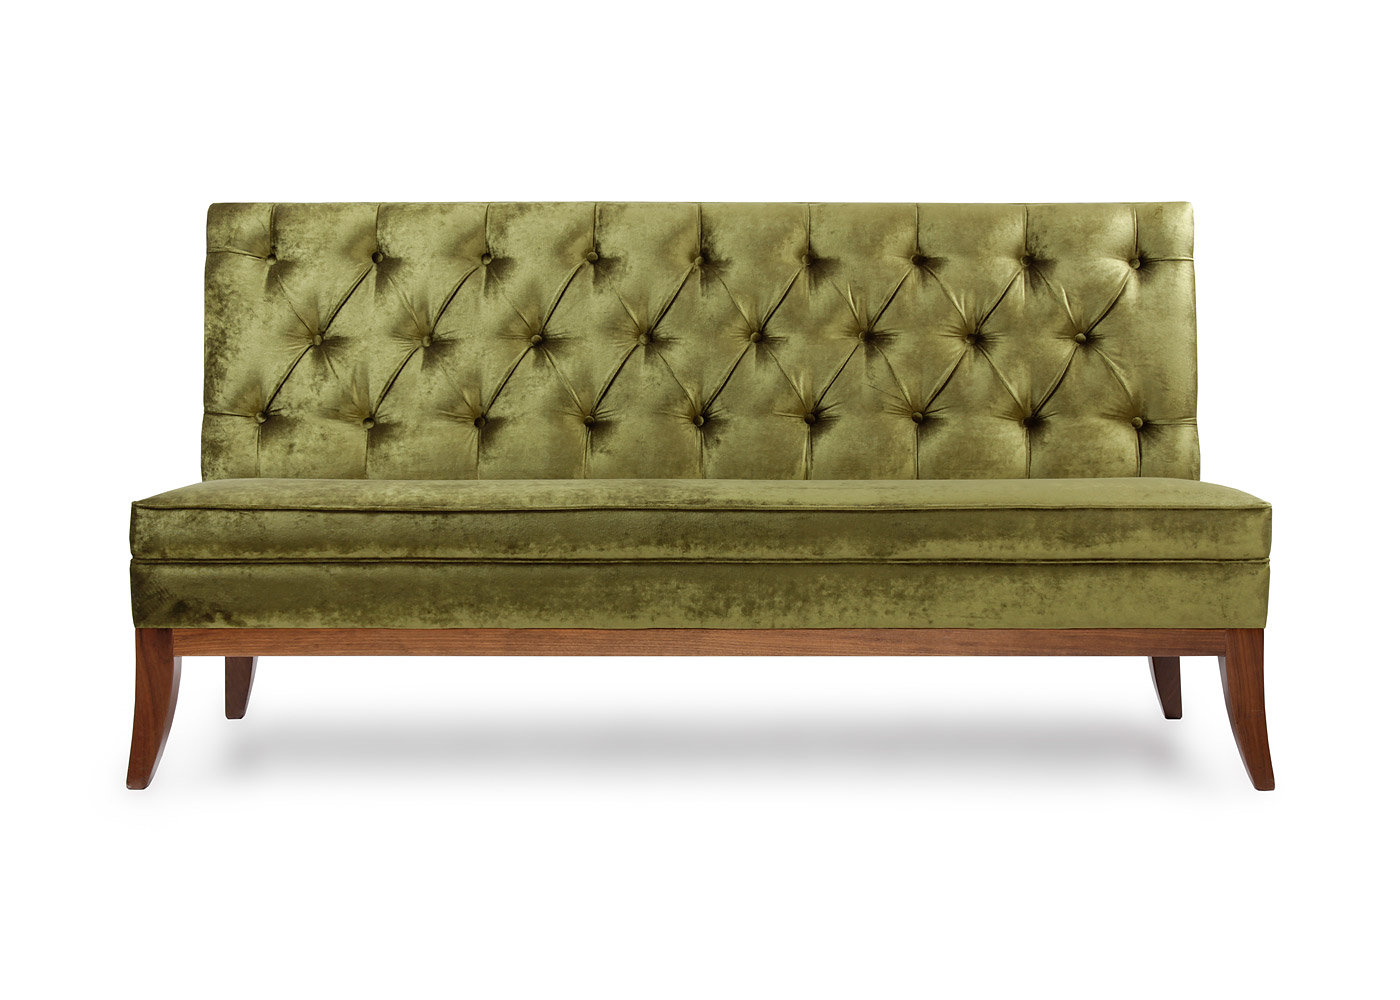 Deep Buttoned Banquette with legs